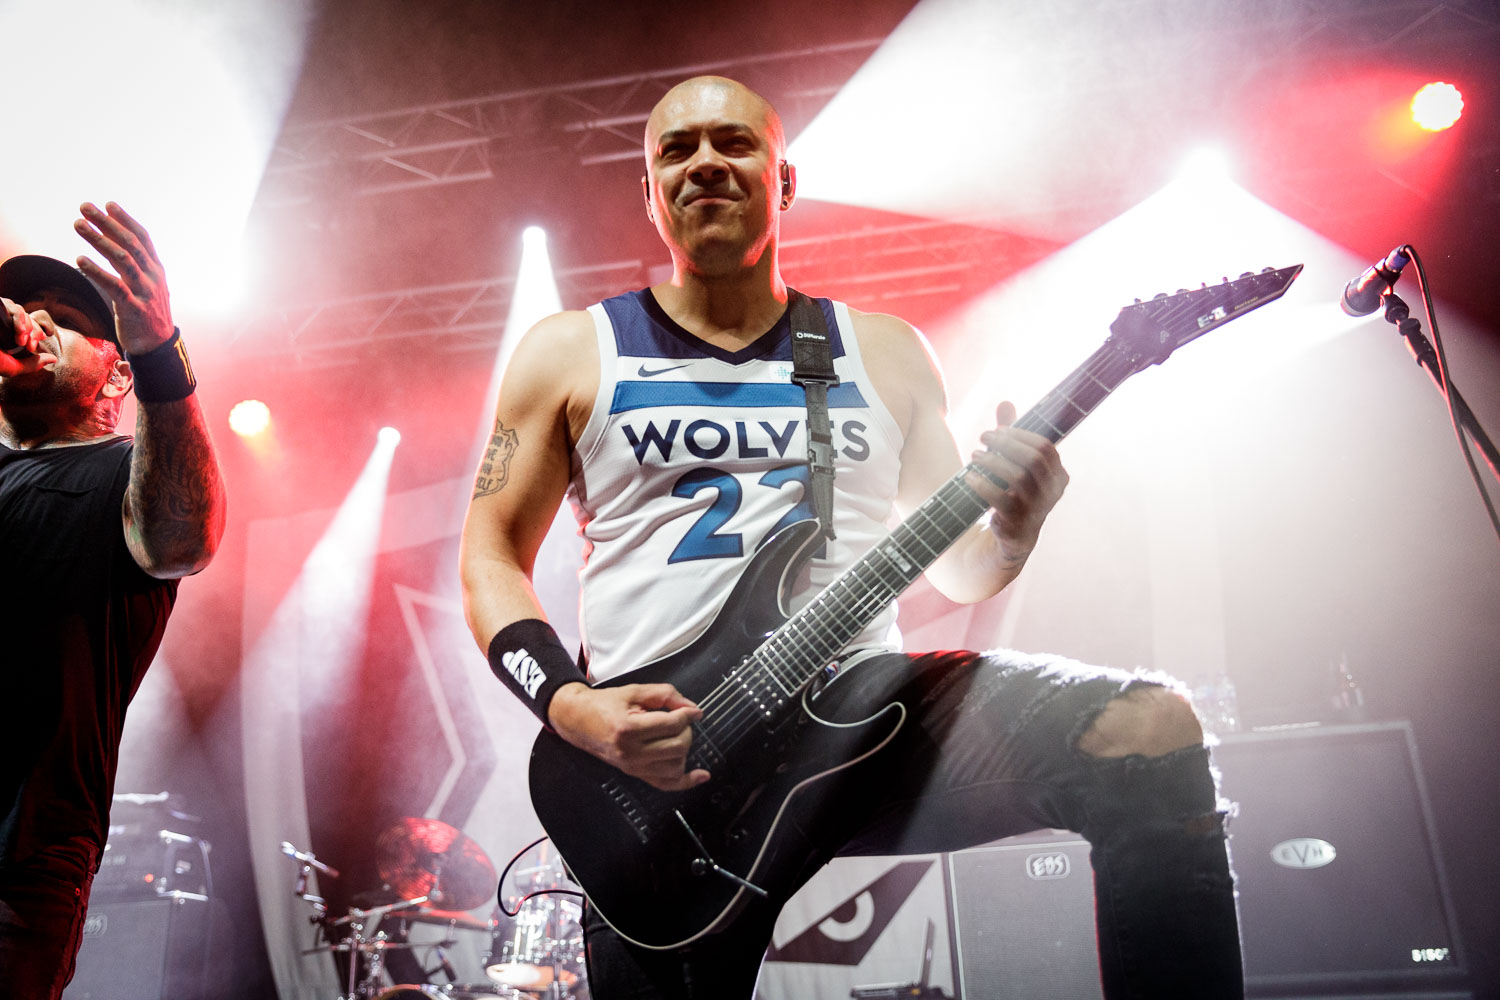 Bad Wolves at Academy 2 in Manchester on June 13th 2019. ©Johann Wierzbicki | ROCKFLESH